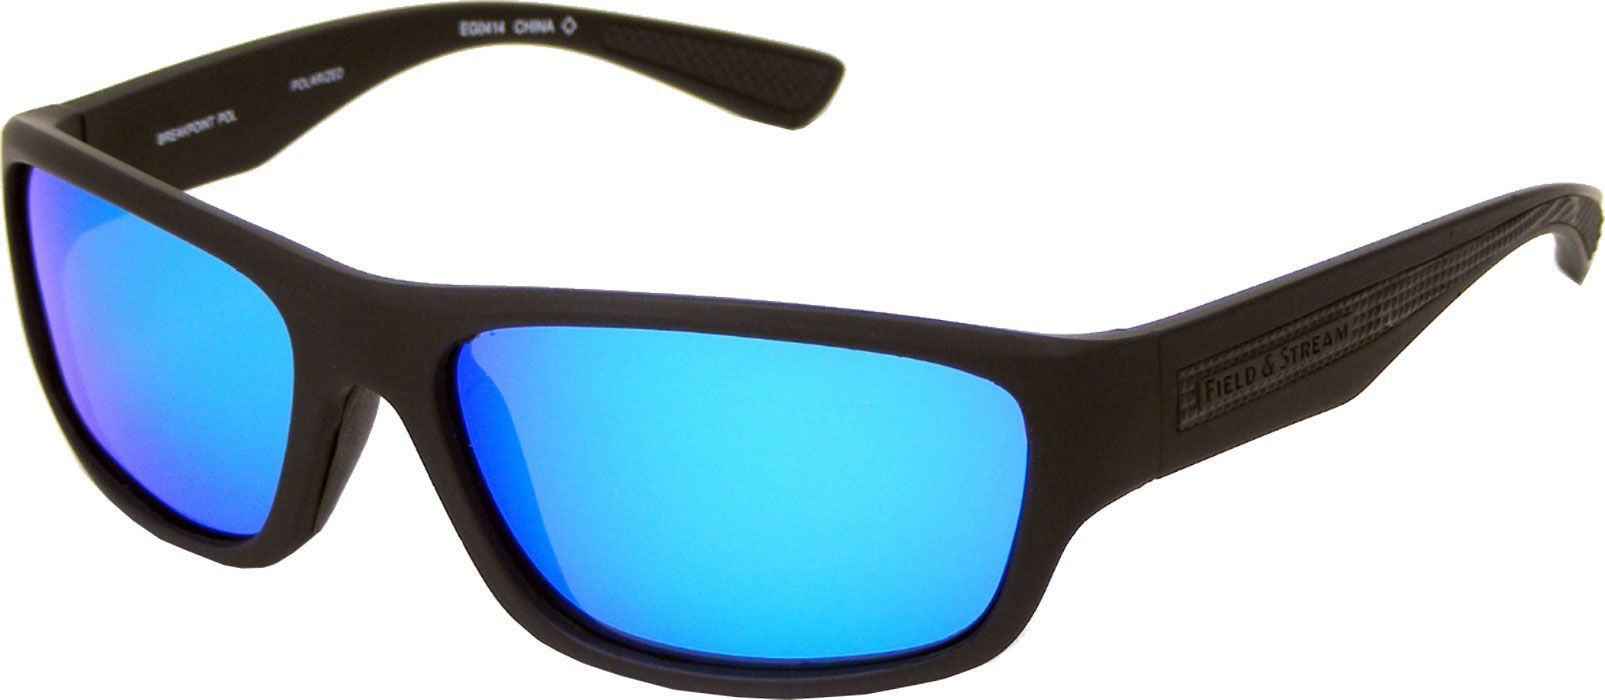 Fishing polarized sunglasses shopping center for Polarized prescription fishing sunglasses